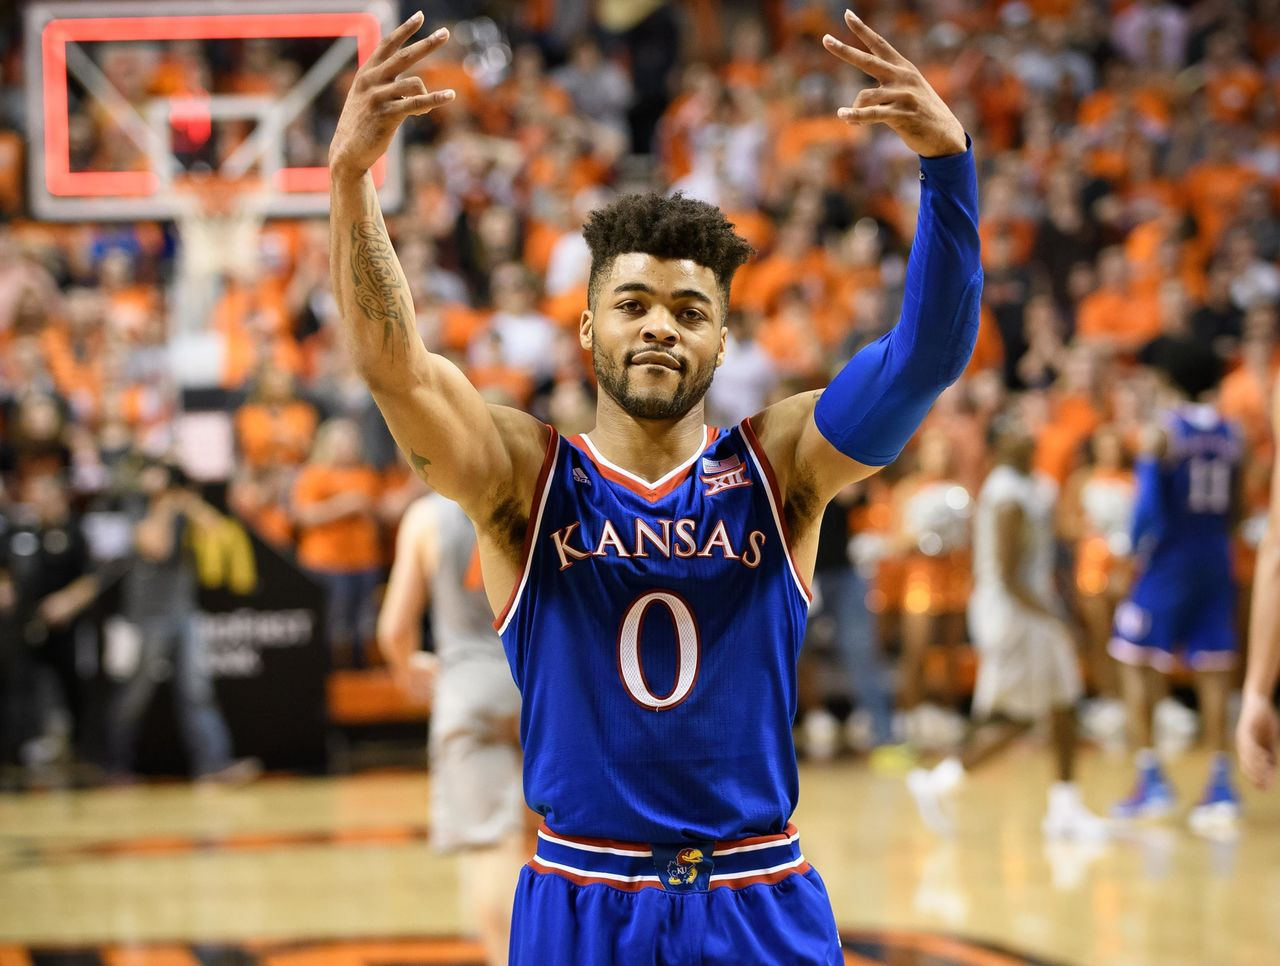 Cropped_2017-03-05t013529z_122358437_nocid_rtrmadp_3_ncaa-basketball-kansas-at-oklahoma-state